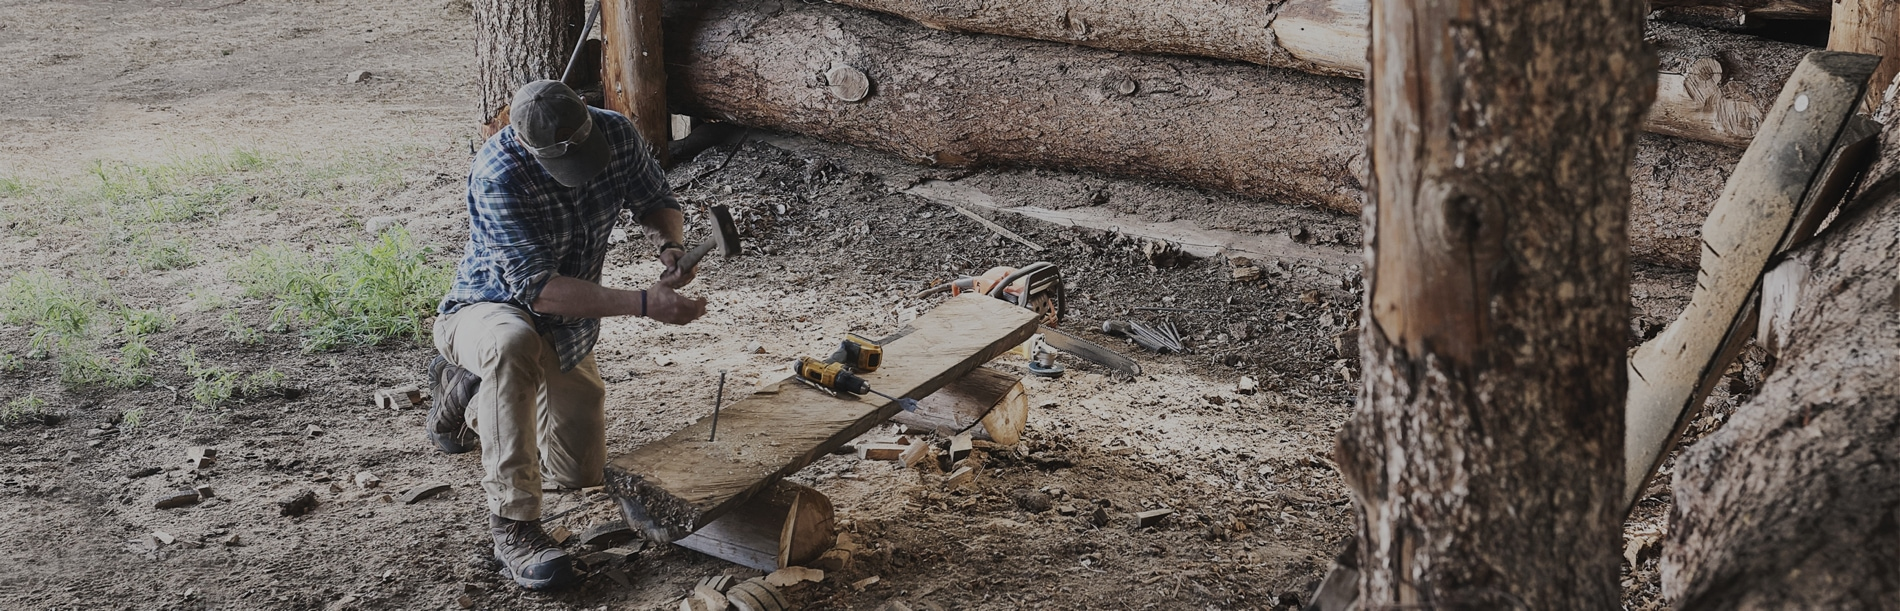 Person hammering in a large nail in a wooden bench, wearing Merrell Work Boots.